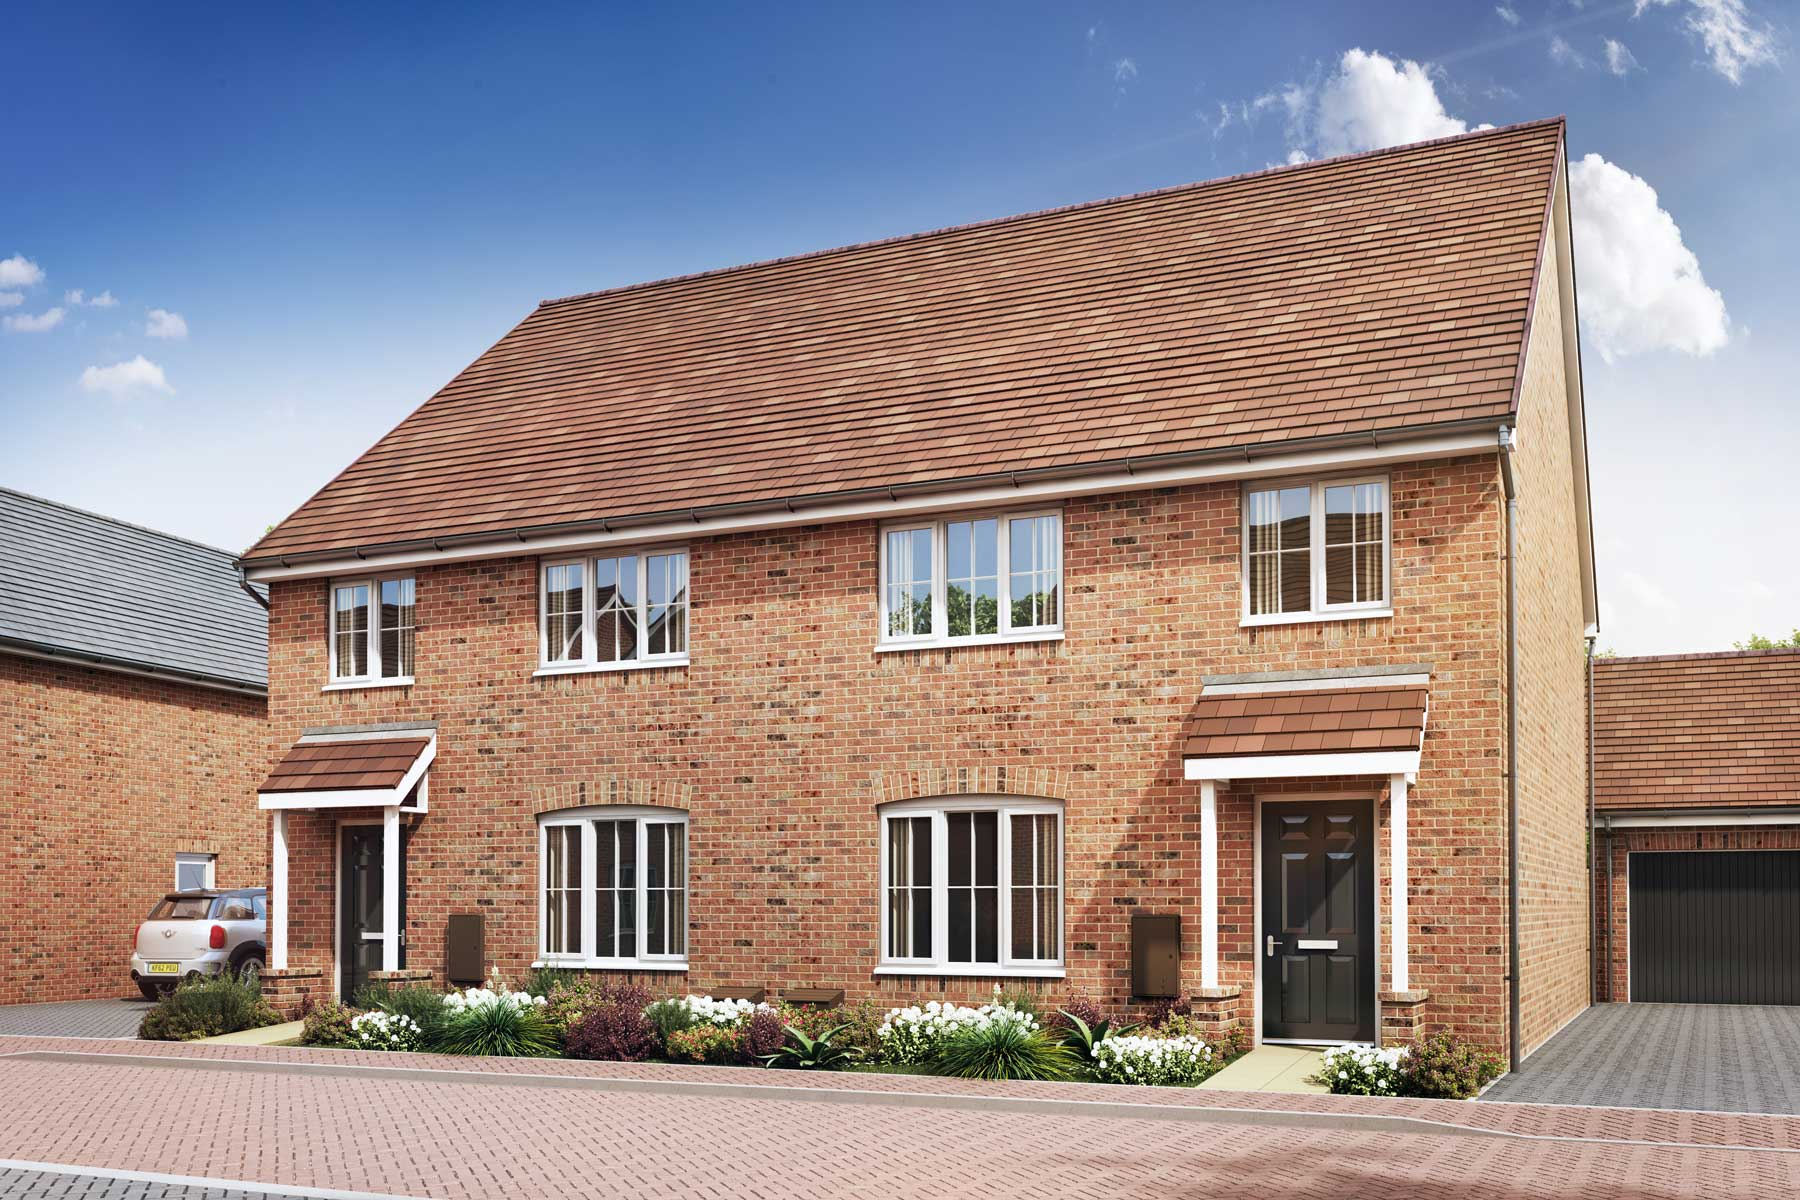 Artist's impression of a typical Midford home